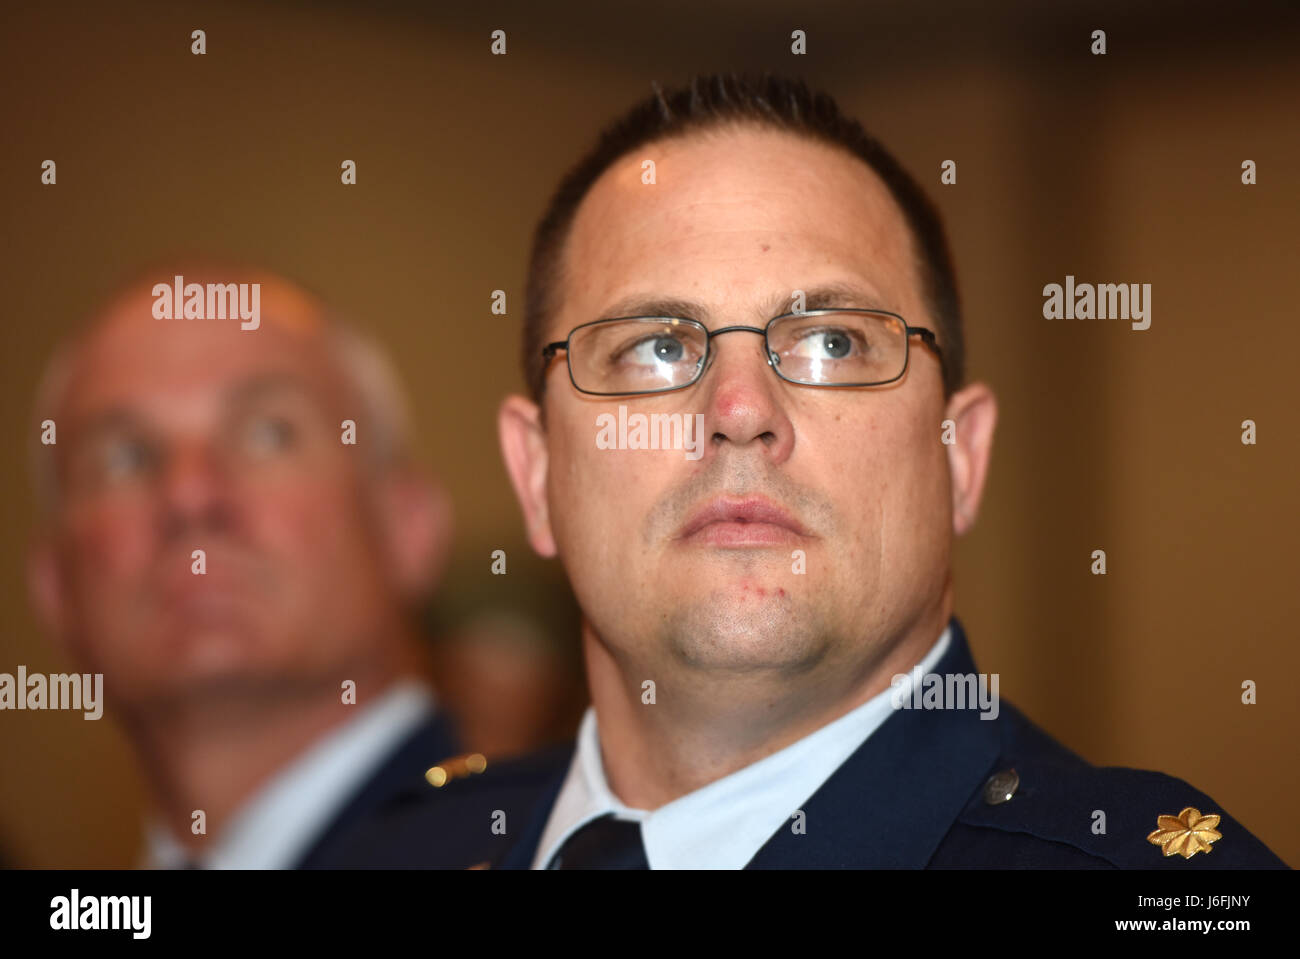 Air Force Maj. John Brownell, with the Nevada Air National Guard, listens to a keynote speaker at the 2017 Federal Stock Photo